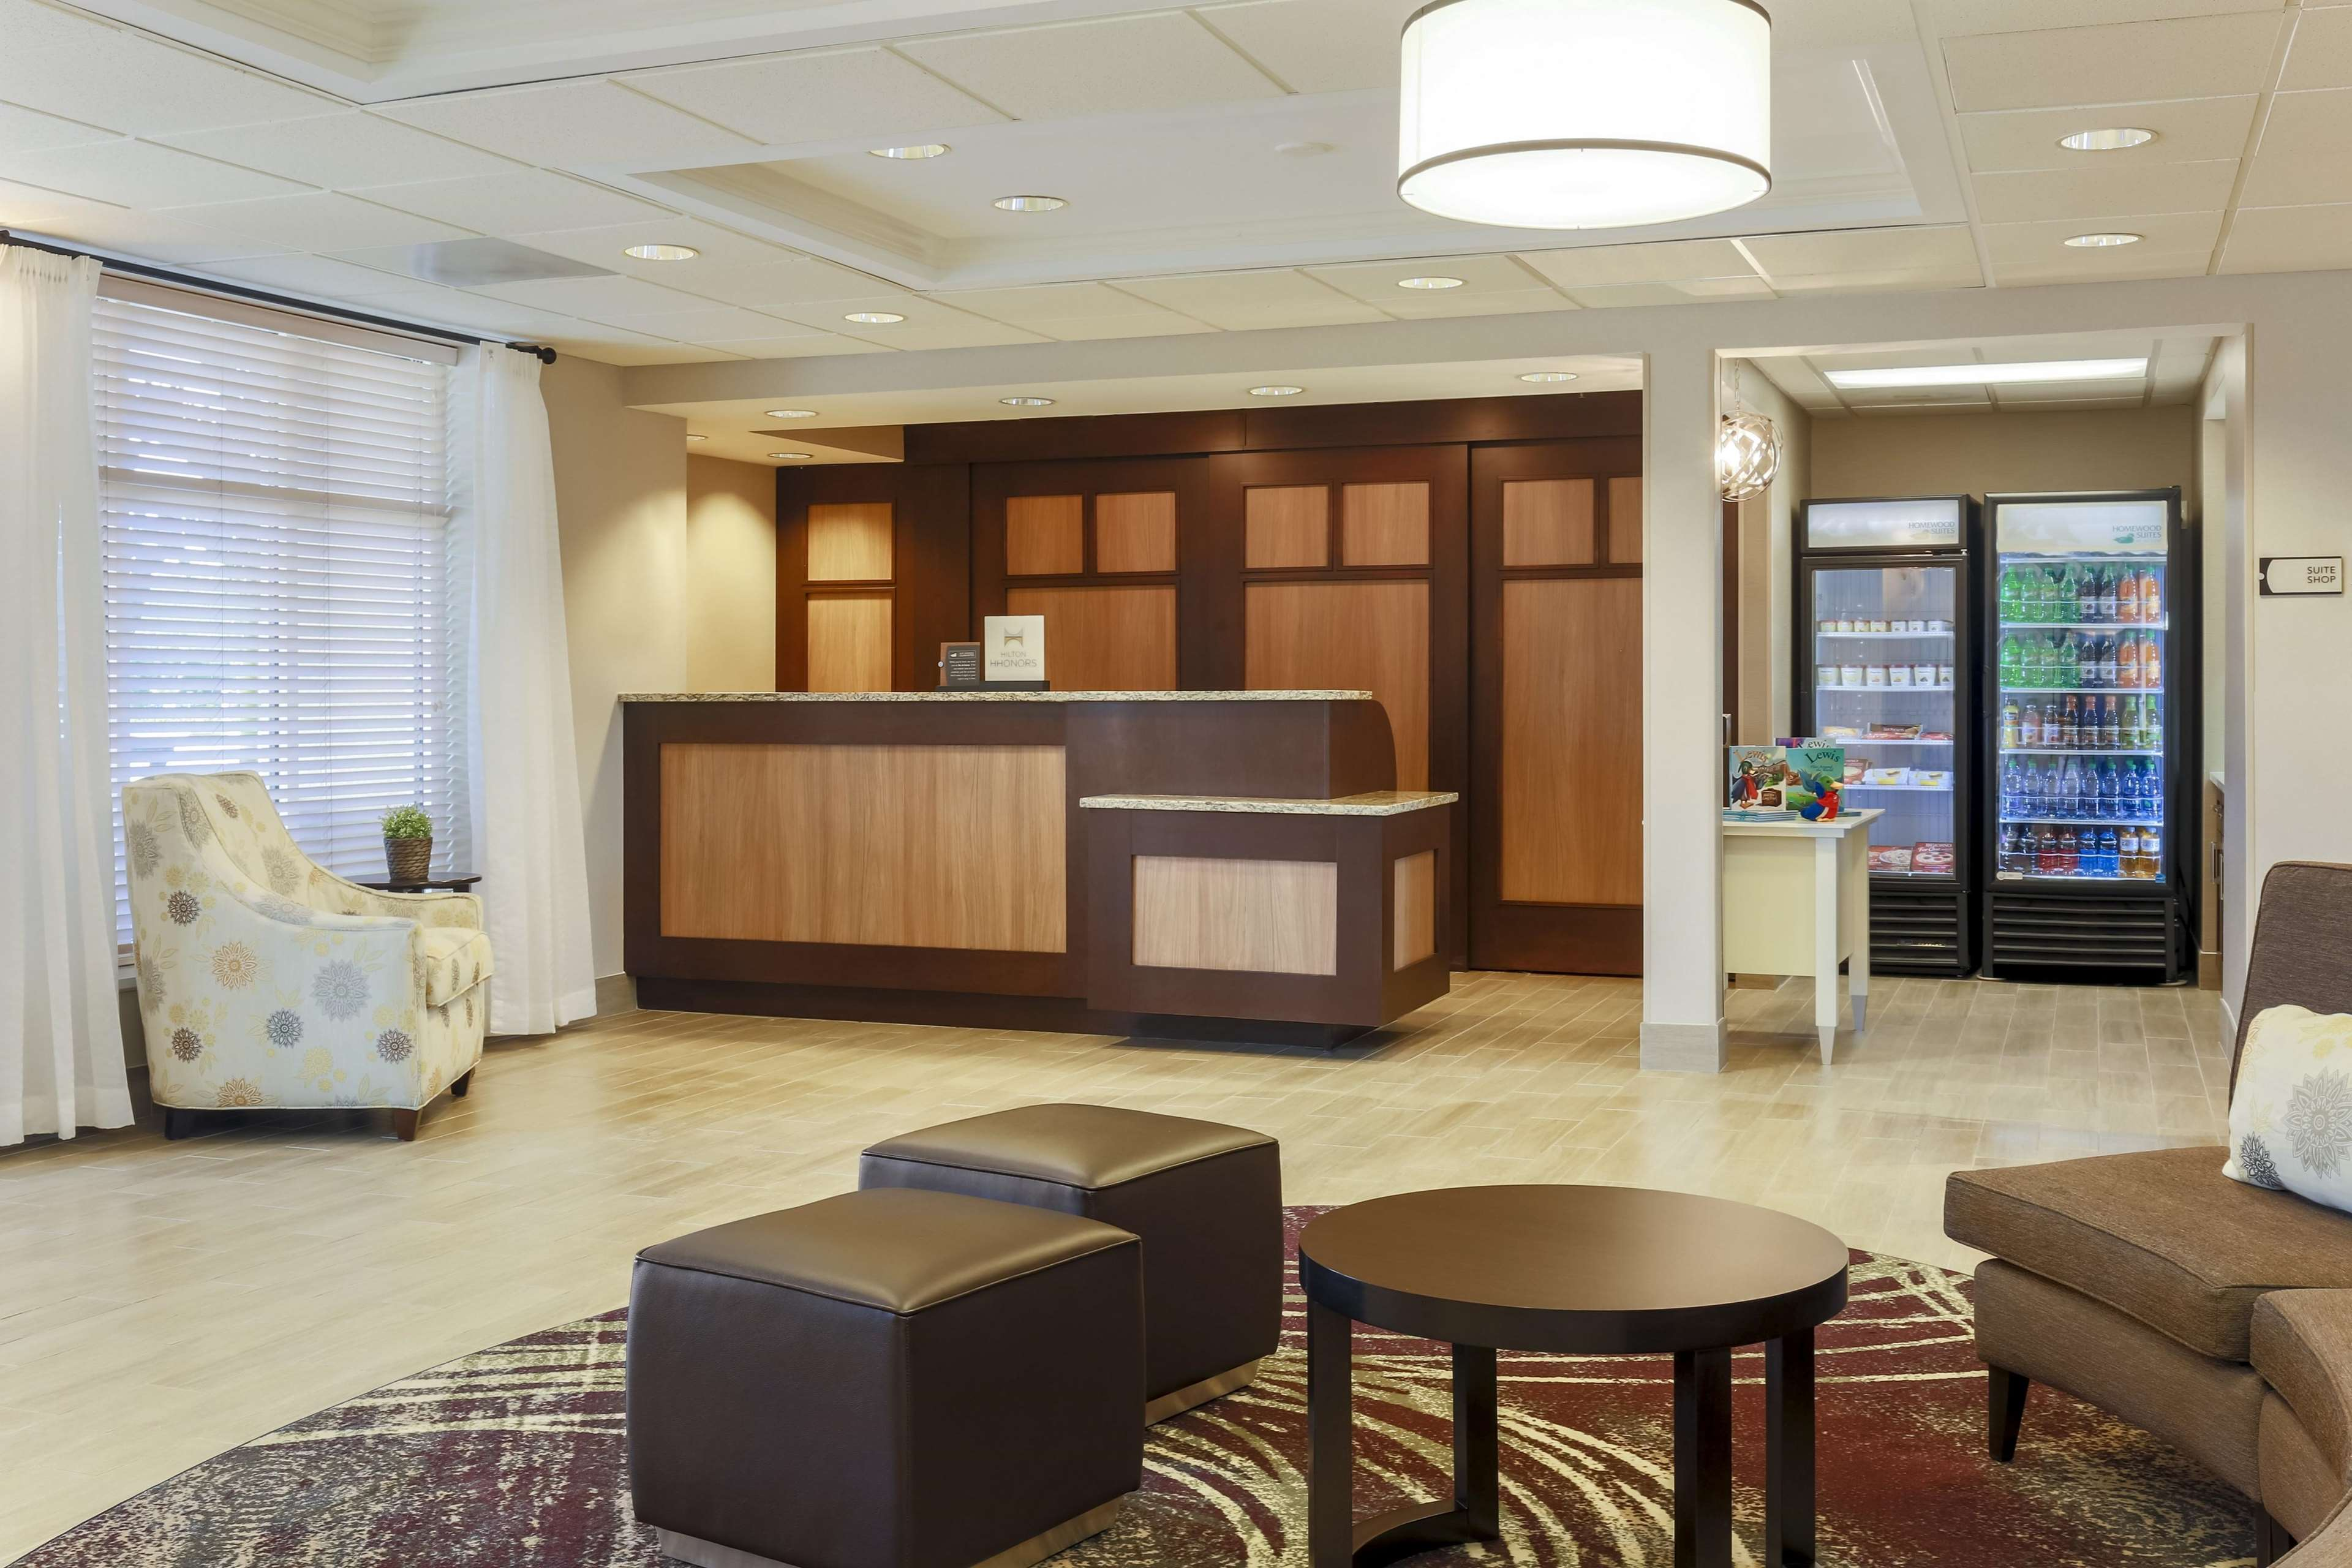 Homewood Suites by Hilton St. Petersburg Clearwater image 17